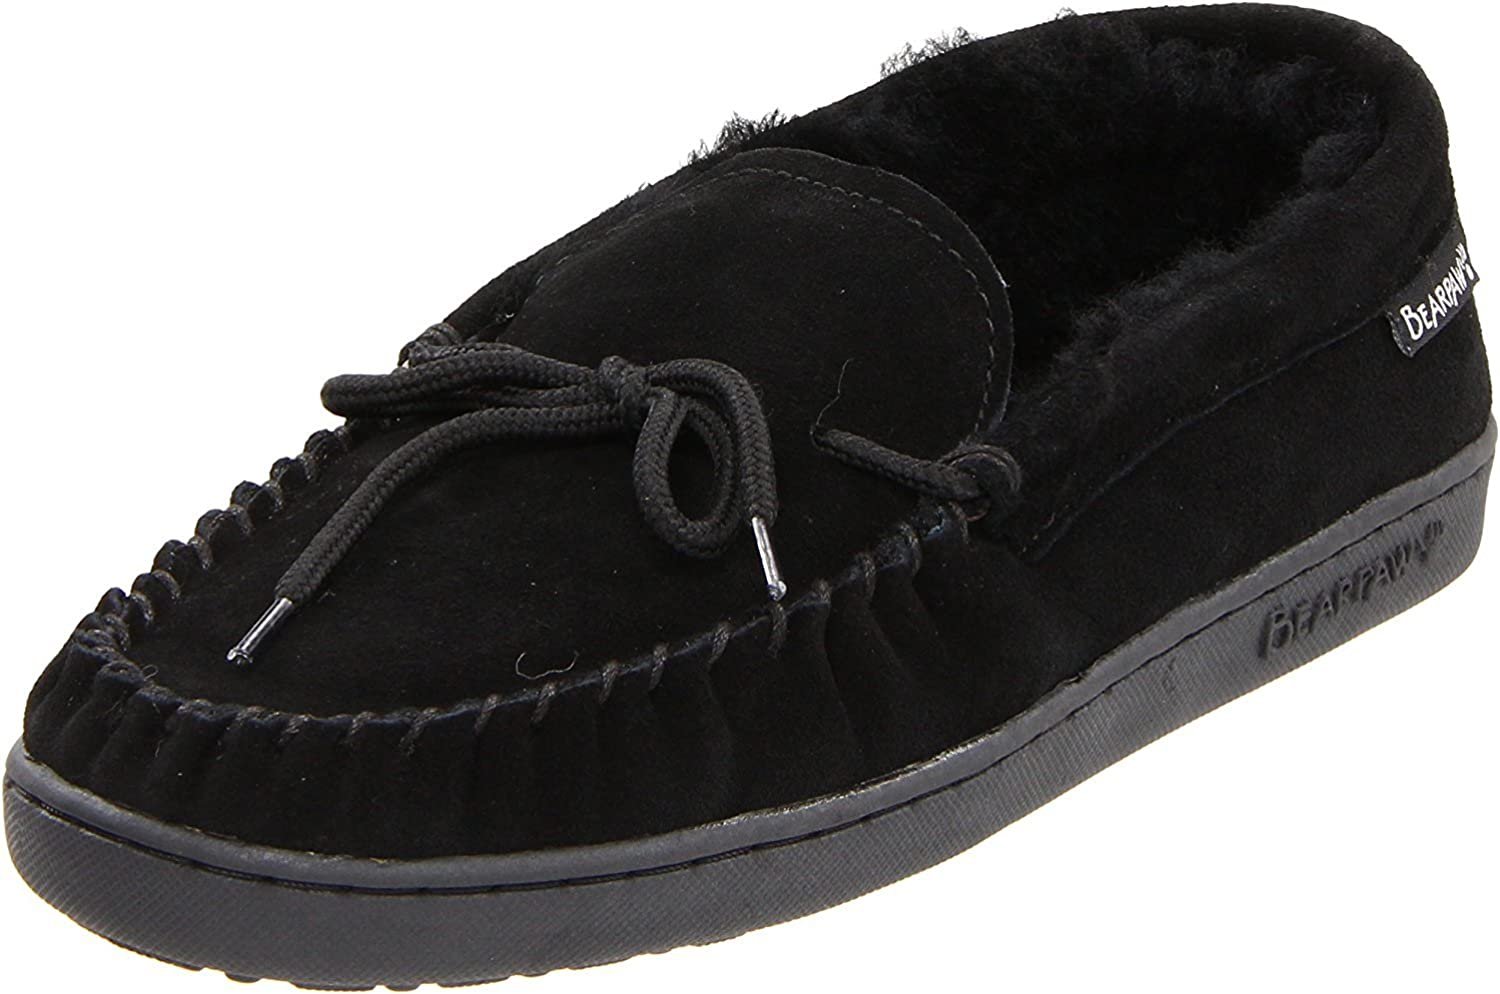 BEARPAW Men's Moc II Black